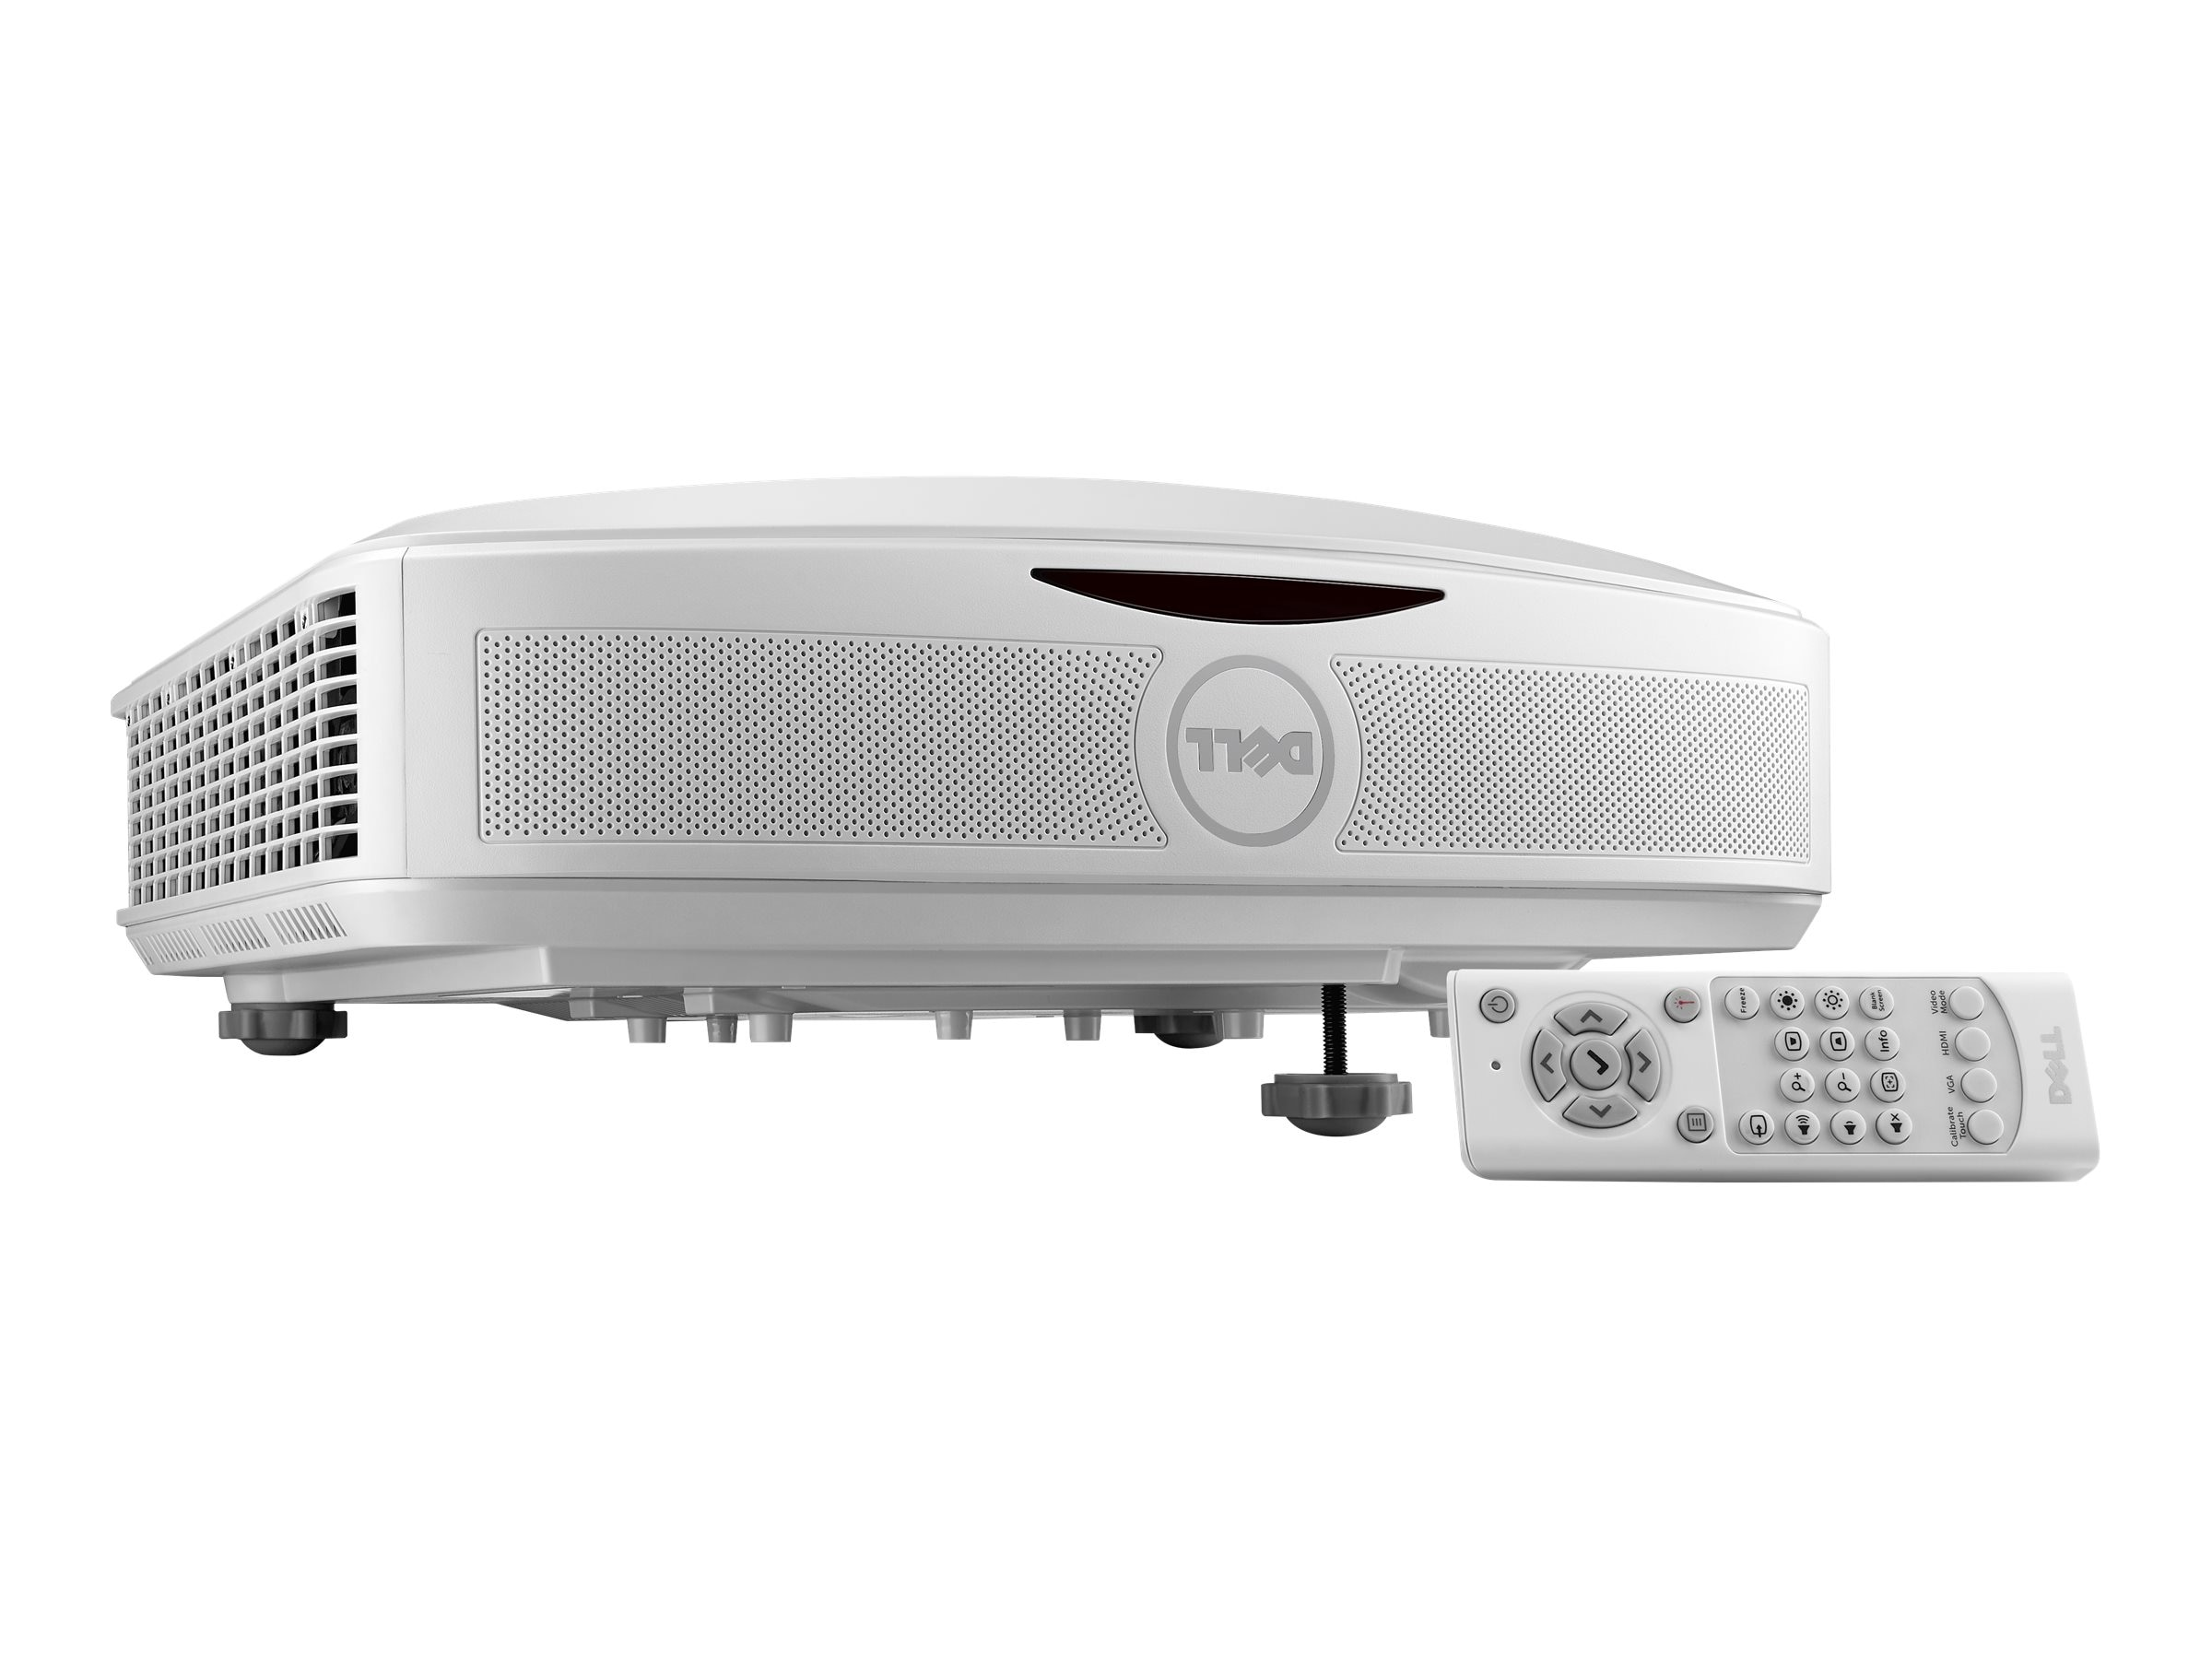 Dell S560P 1080p DLP Projector with Speakers, 3400 Lumens, White, S560P